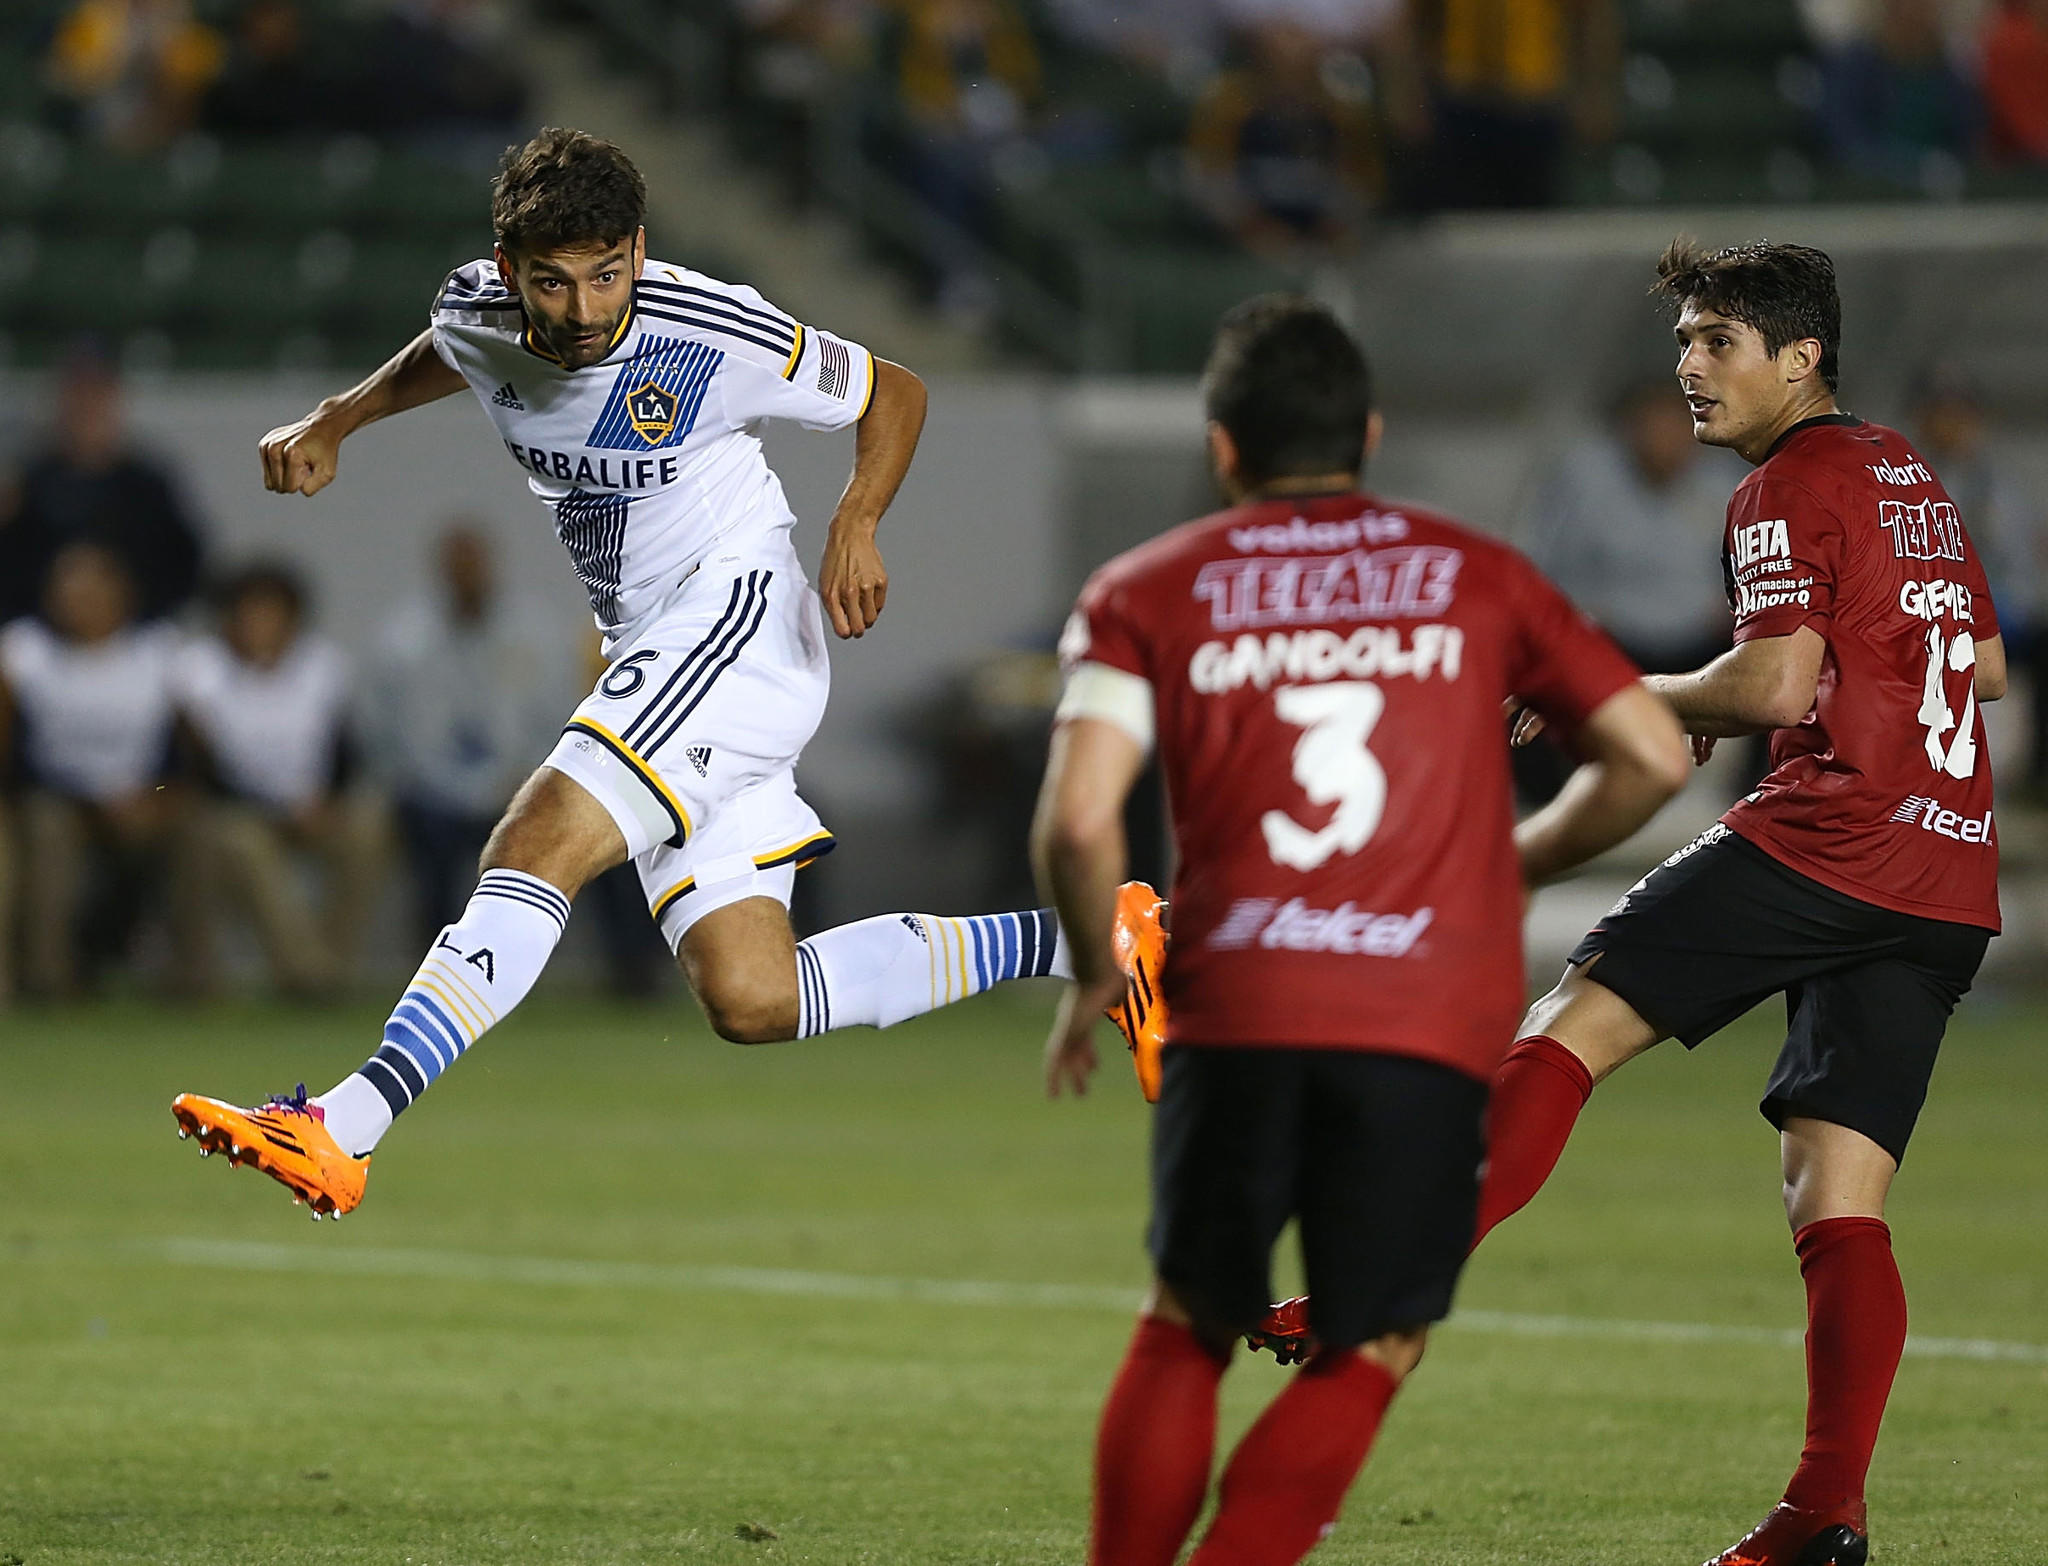 Galaxy midfielder Baggio Husidic, shown attempting a header against Club Tijuana on March 12, has scored once in four starts this season and solidified a diamond midfield that has been reconfigured to get the ball to striker Robbie Keane.